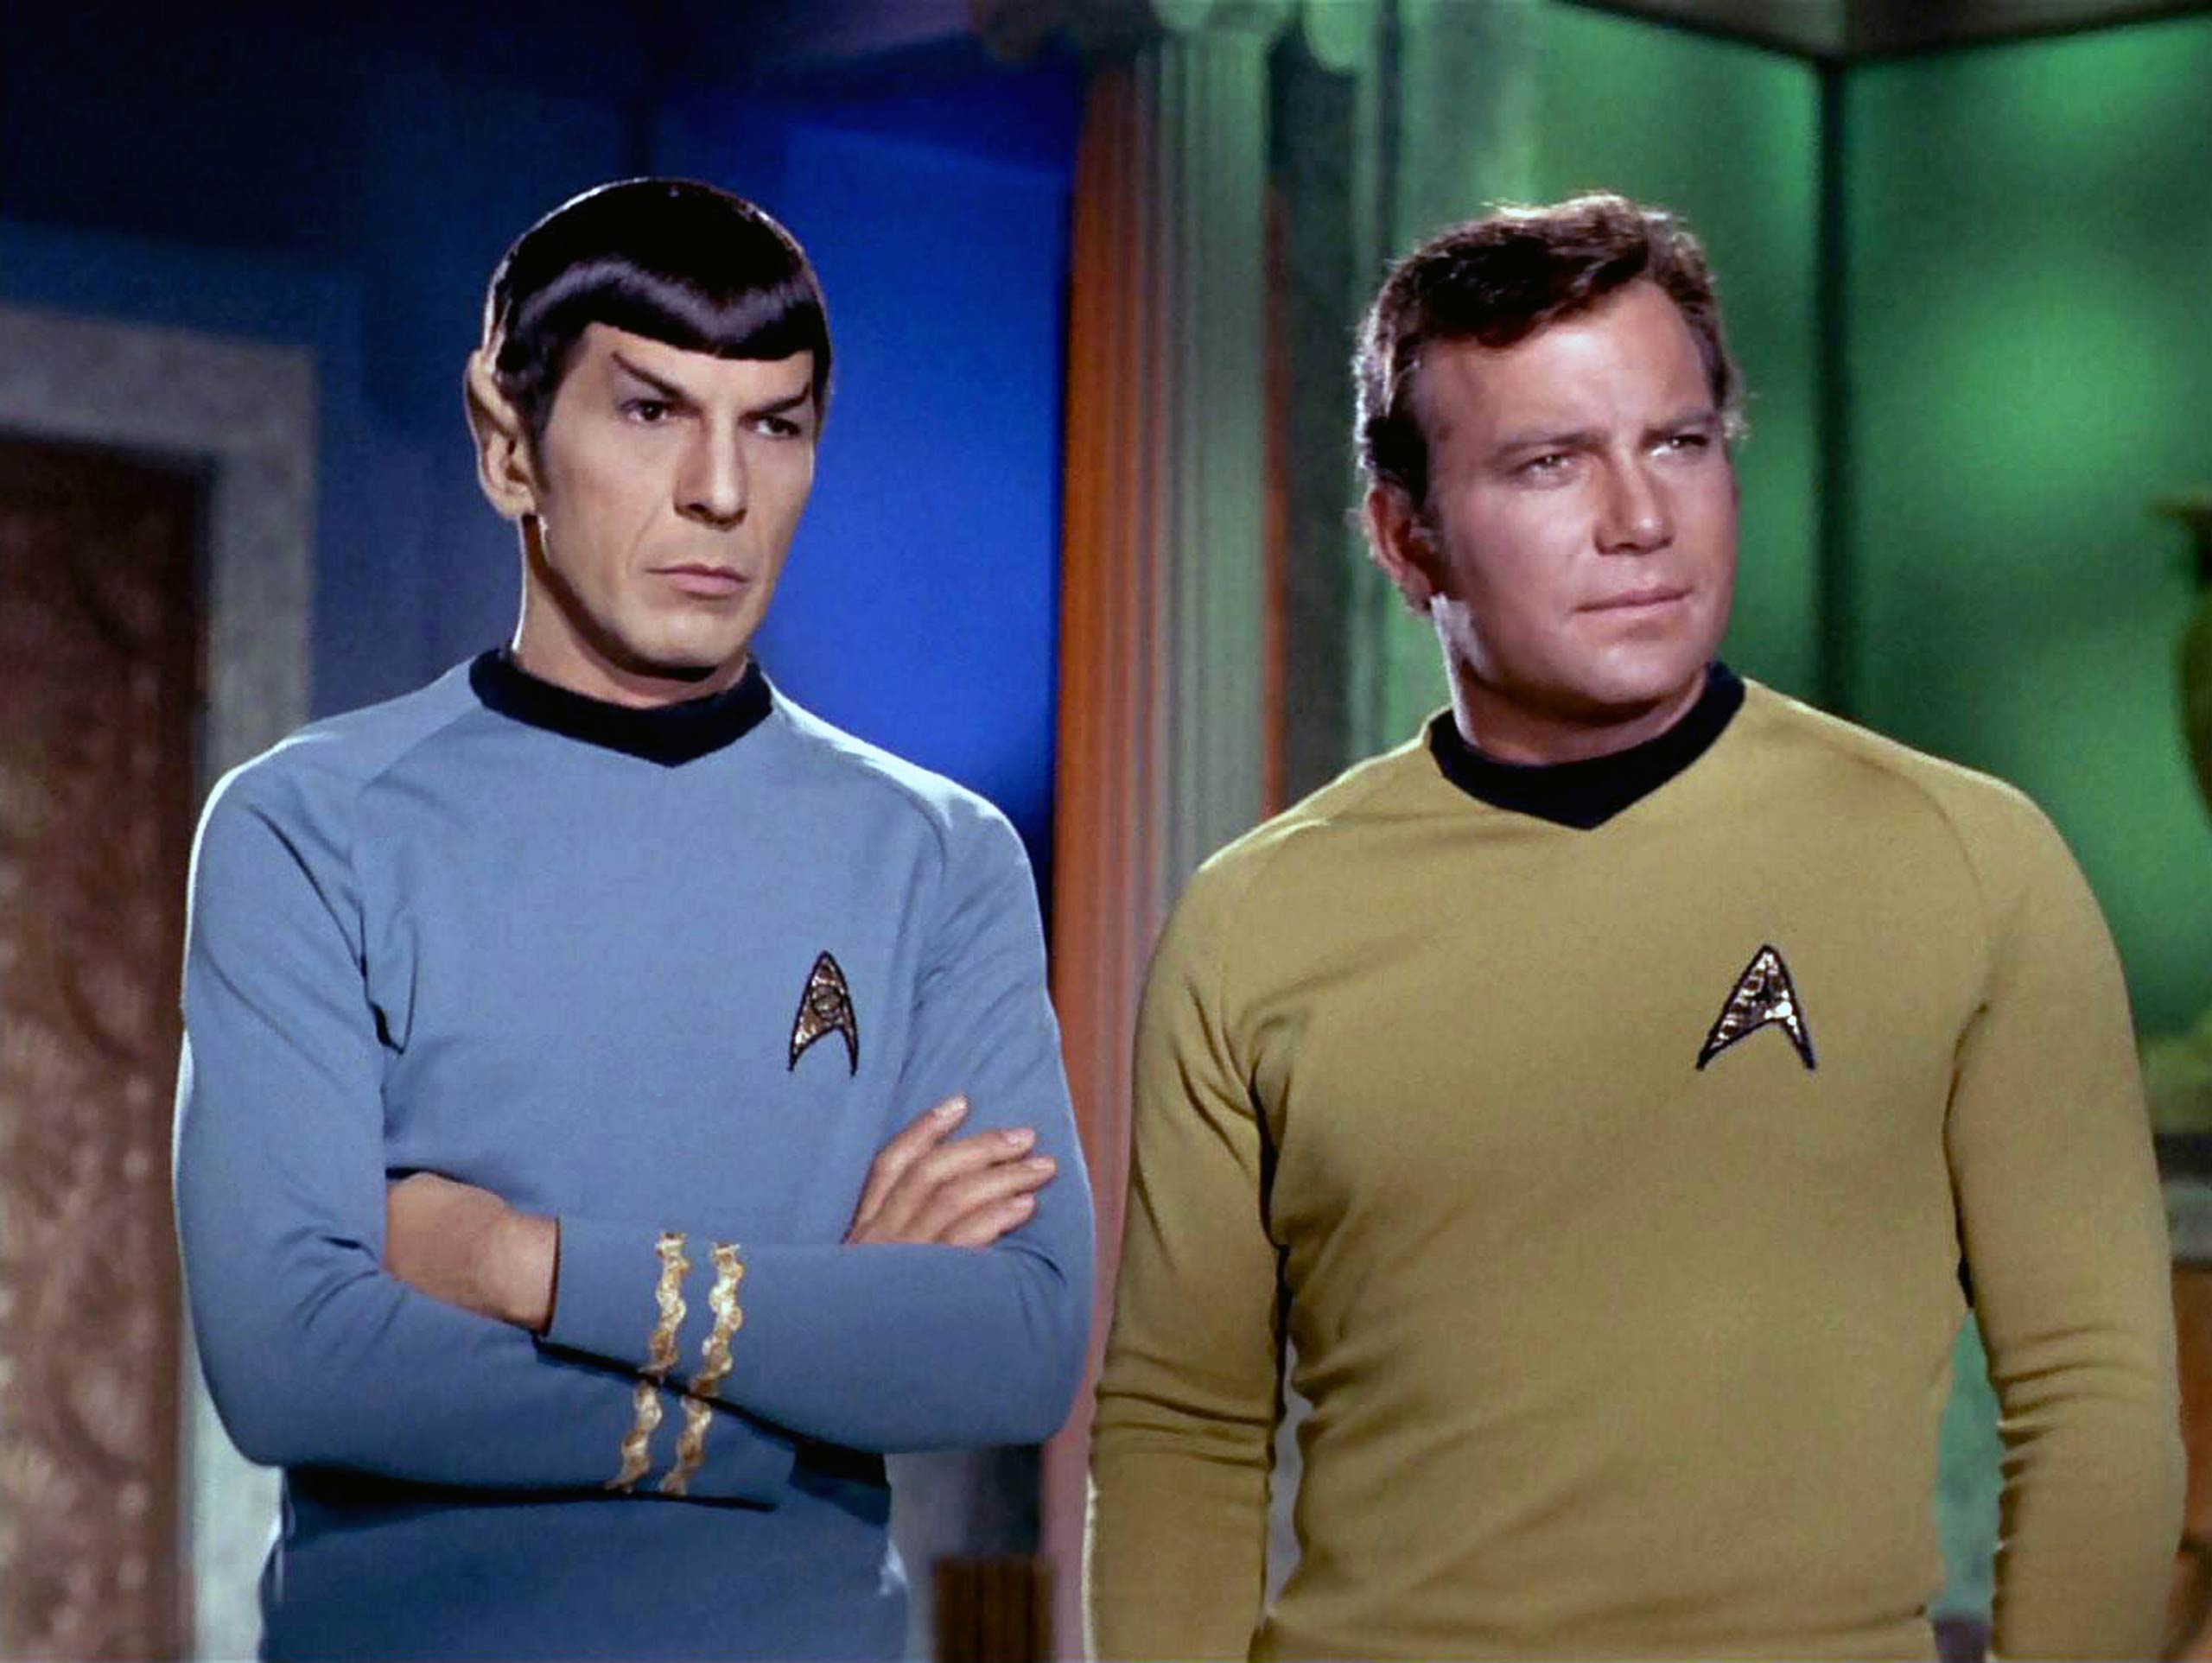 Leonard Nimoy as Mr. Spock and William Shatner as Captain James T. Kirk in season 3 of <i>Star Trek</i> in 1968.